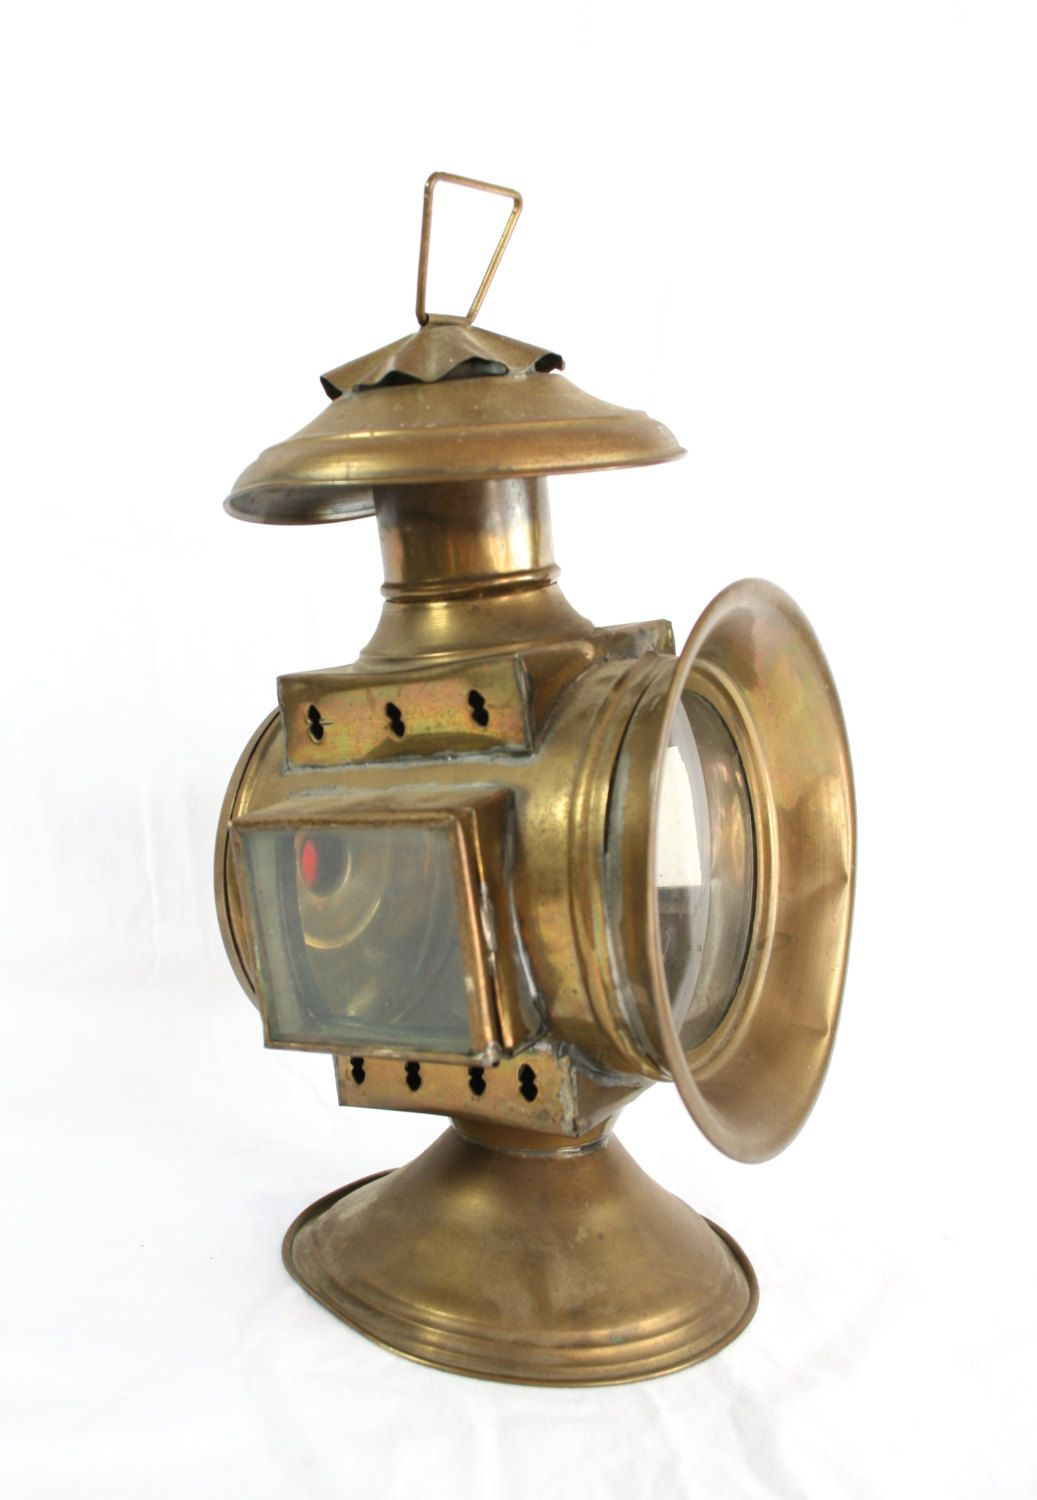 Brass Signal Light Lamp Old Railroad Lantern Train Decor Etsy Railroad Lanterns Lamp Train Decor